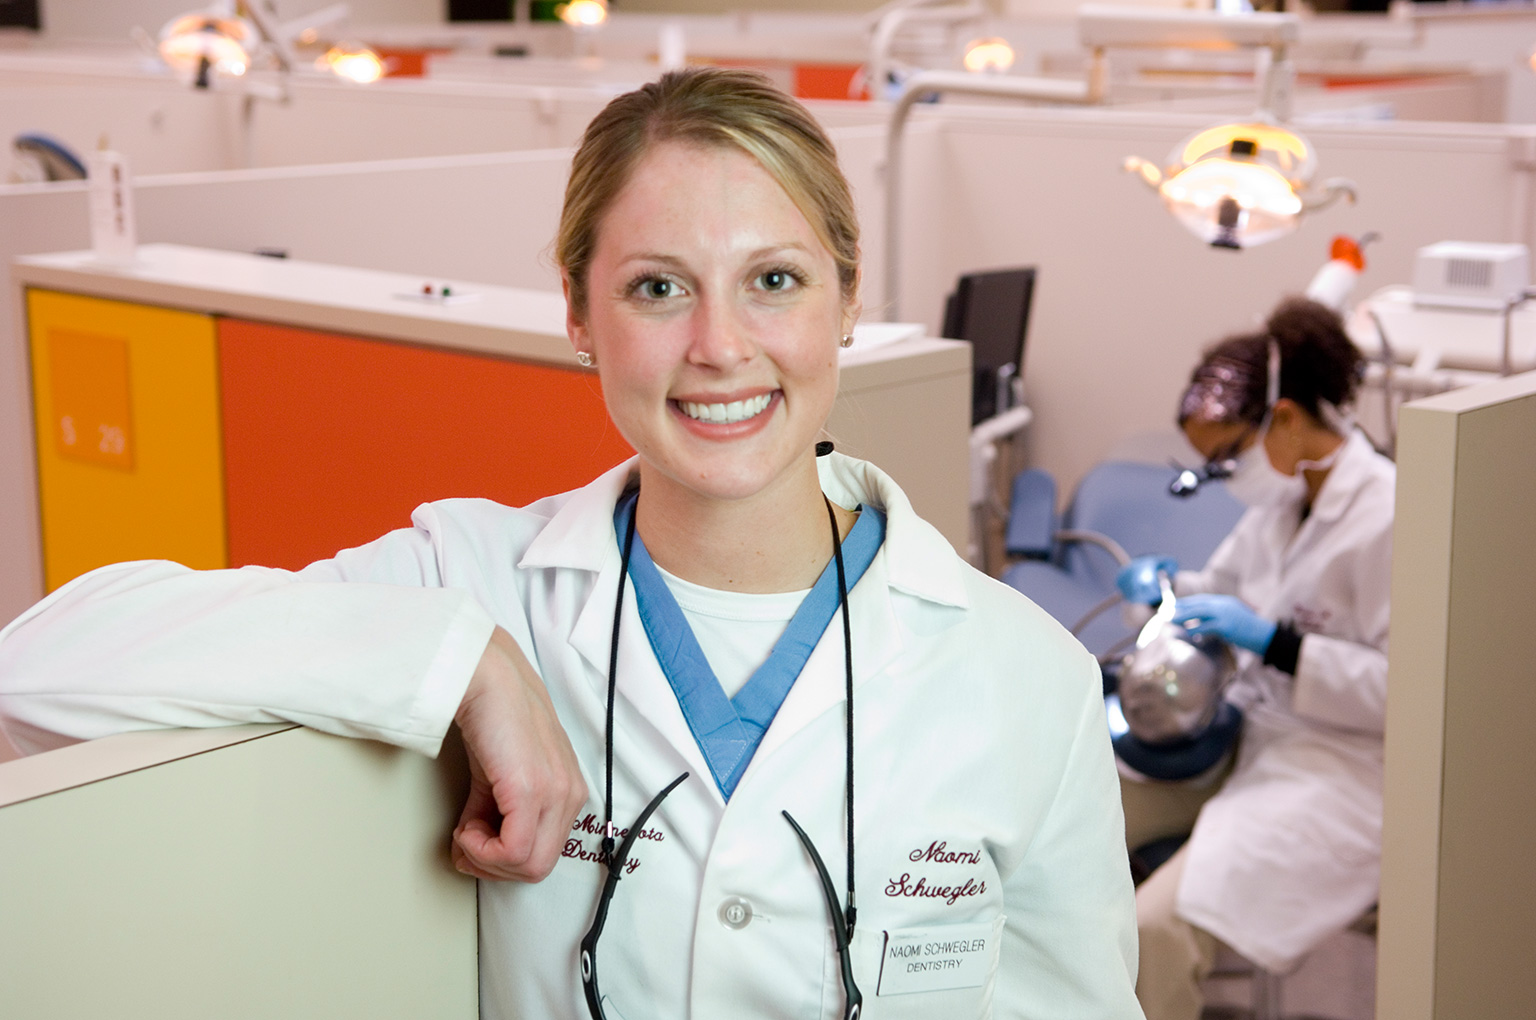 Dental Clinics, School of Dentistry - University of Minnesota |